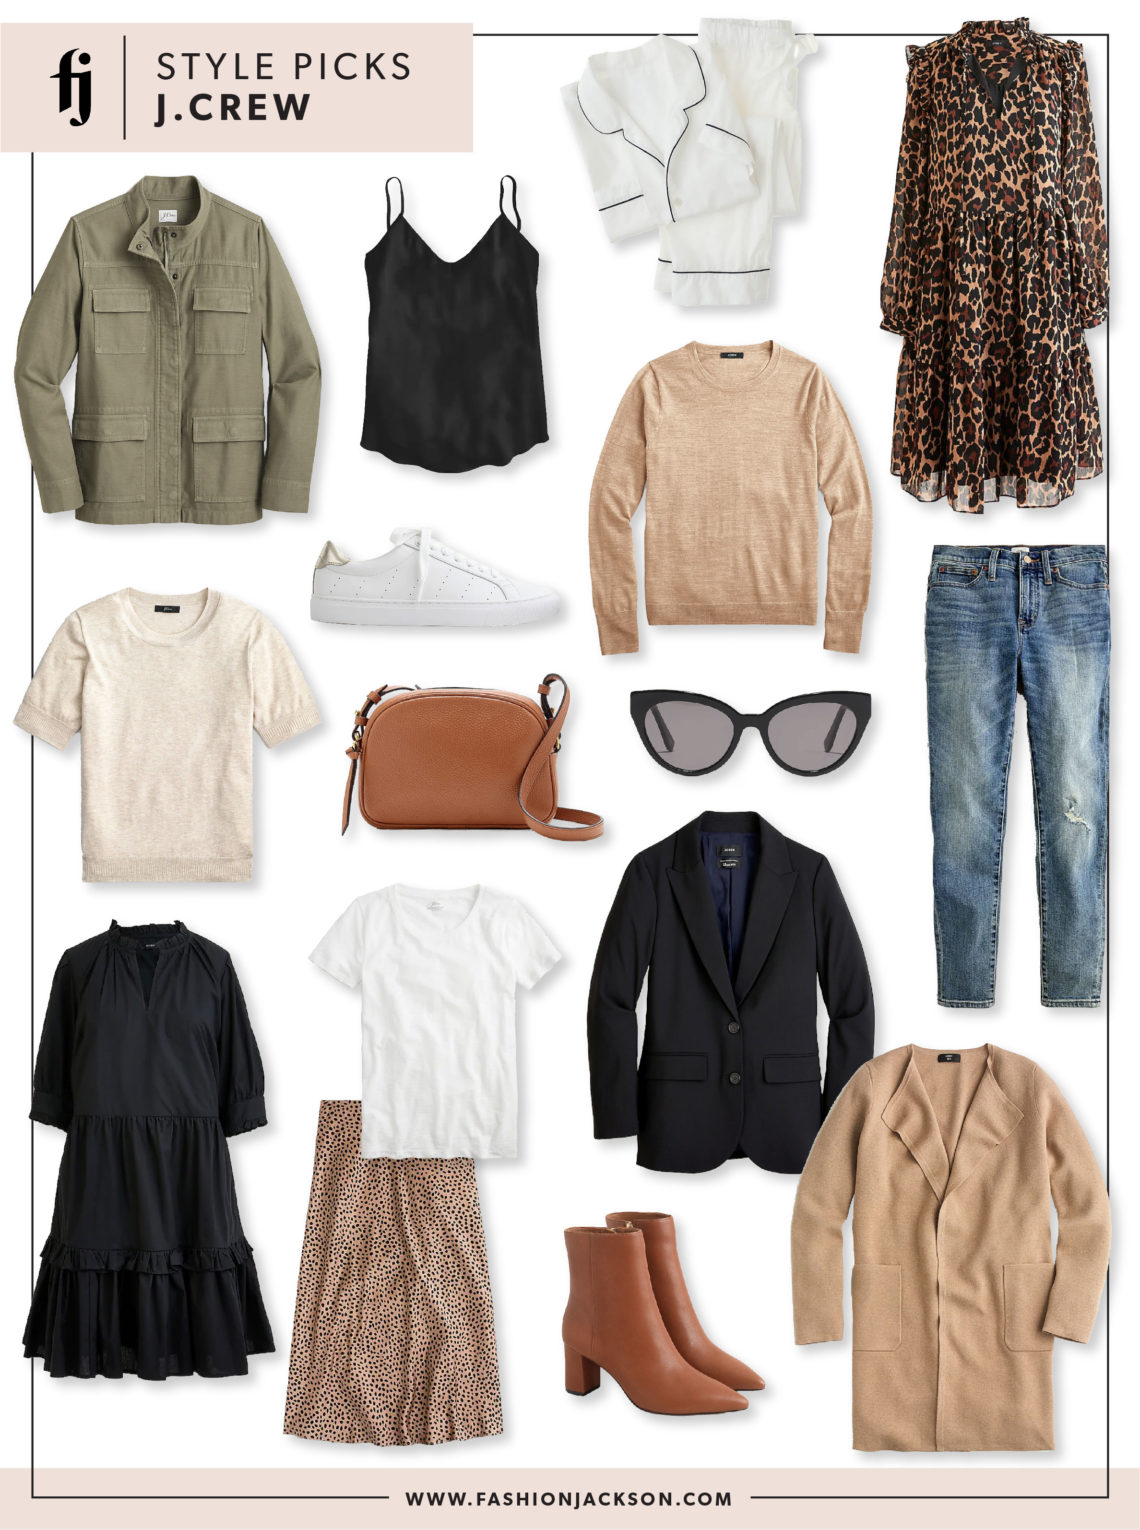 Jcrew Fall Outfits